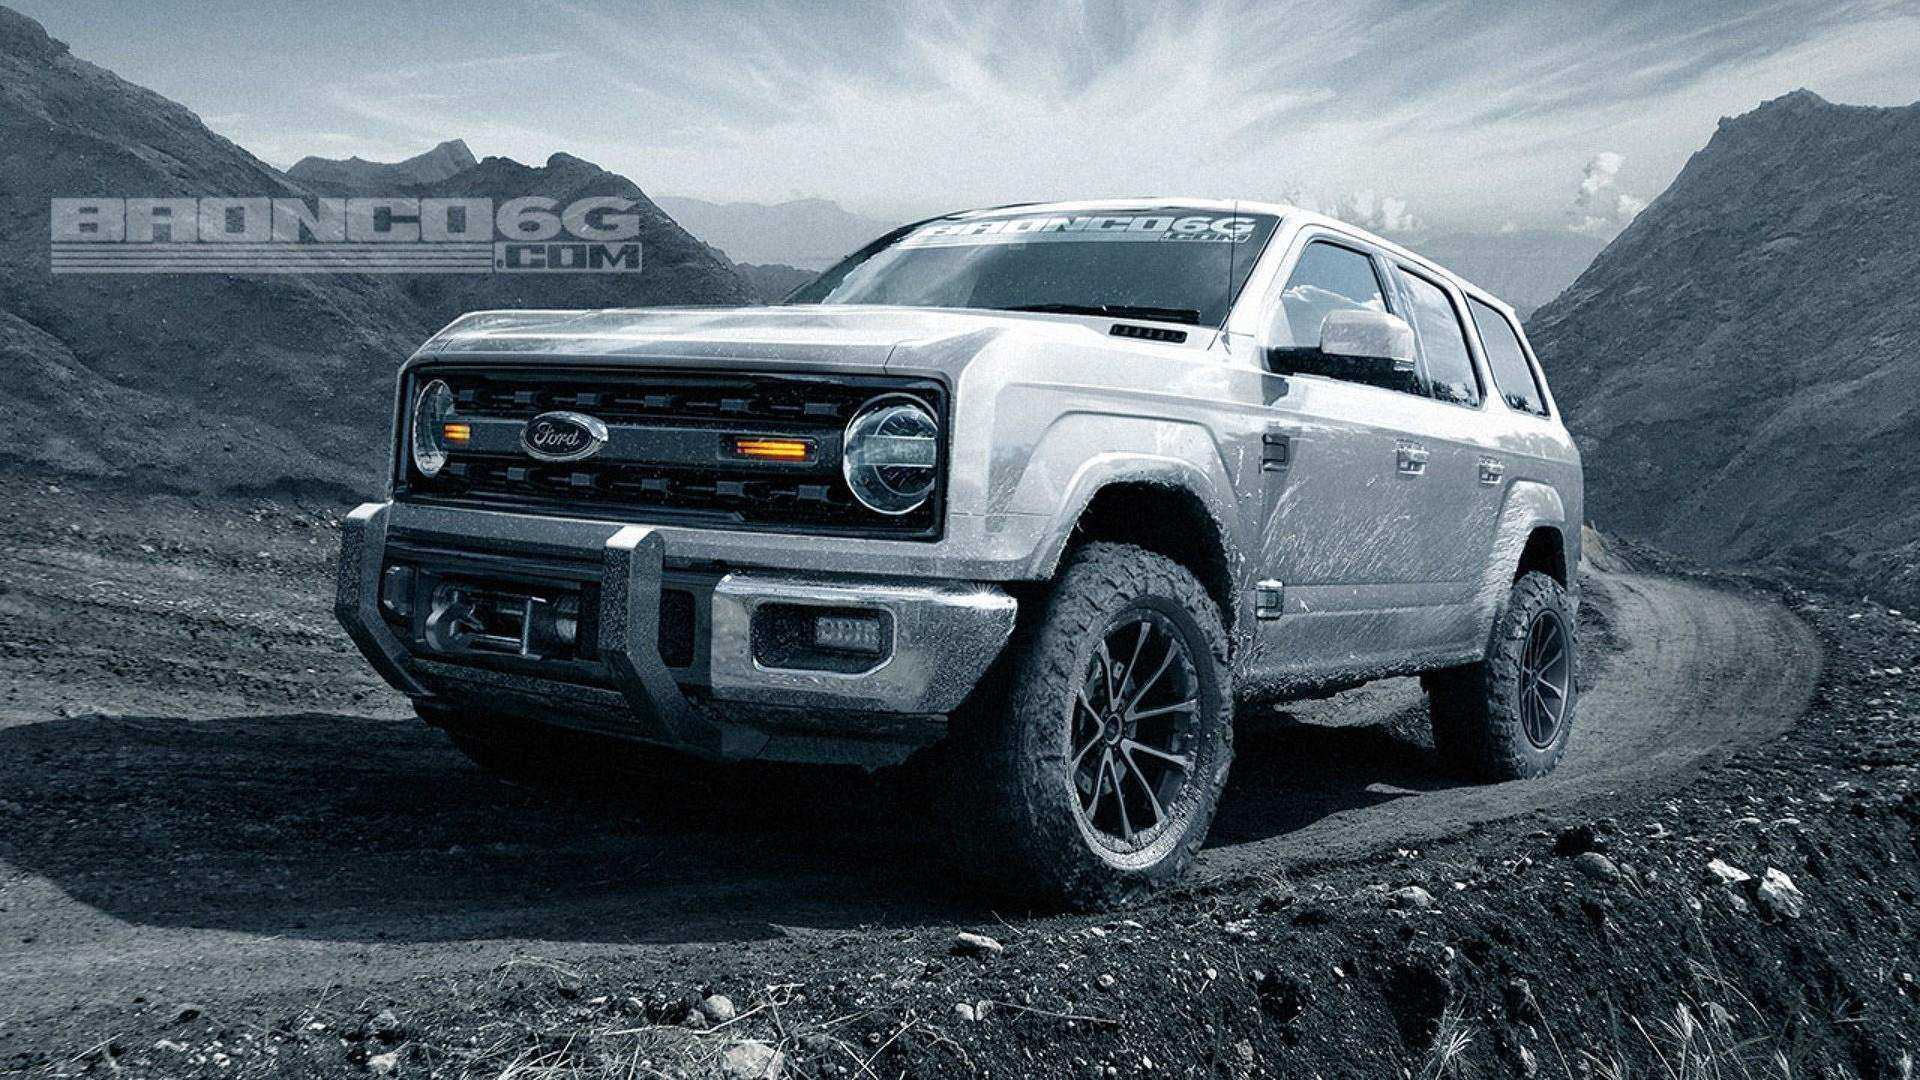 62 New 2020 Ford Bronco With Removable Top Release Date with 2020 Ford Bronco With Removable Top